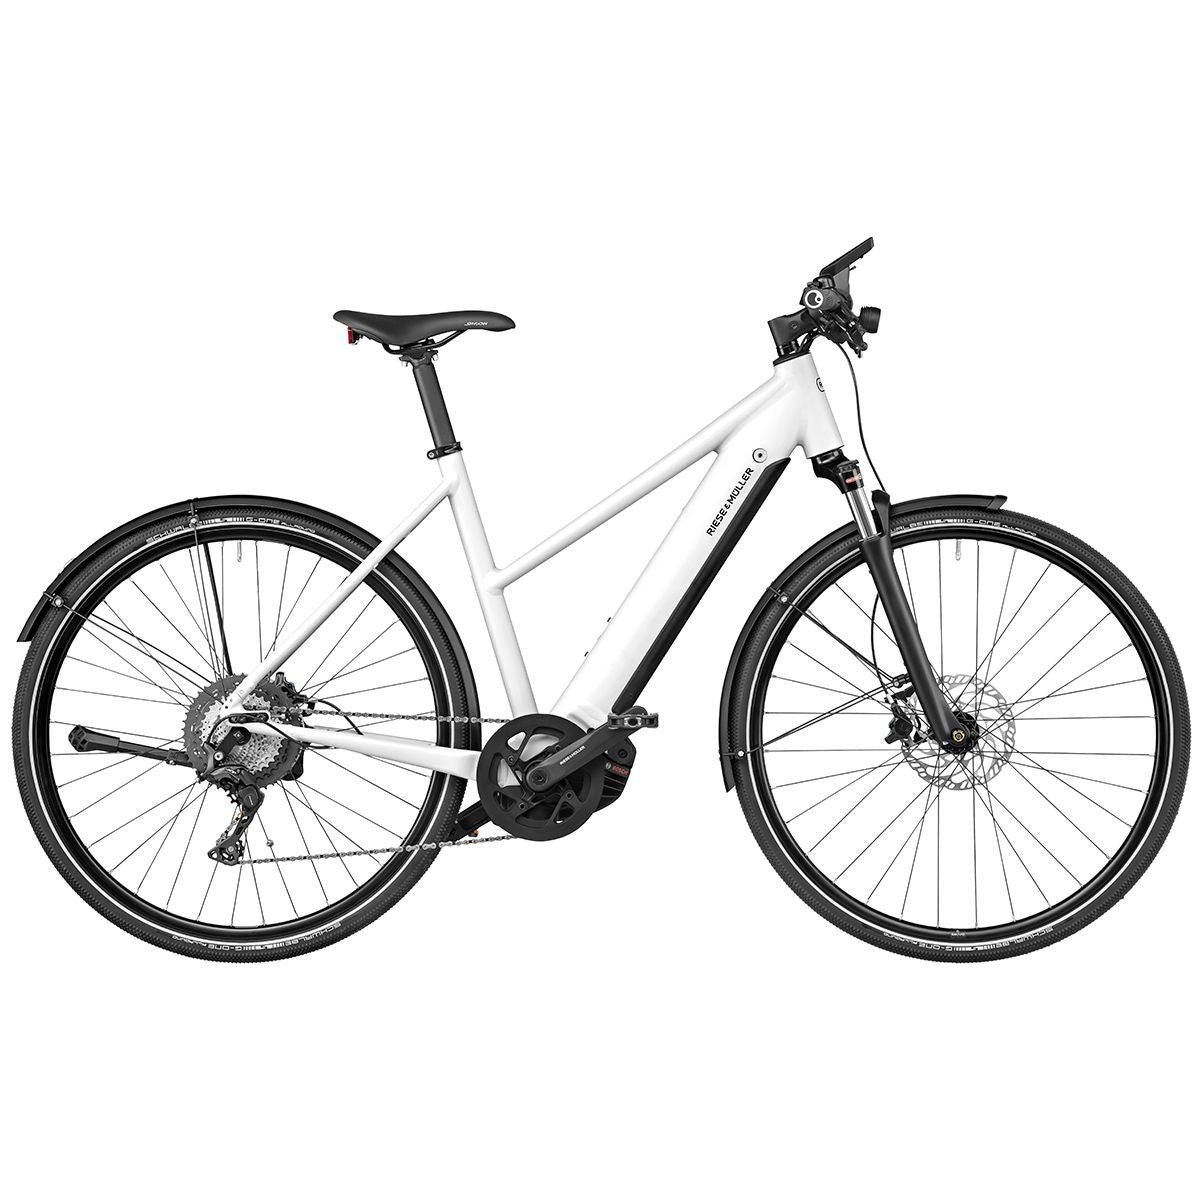 Riese & Muller Roadster Mixte Touring HS-Oregon E-Bikes